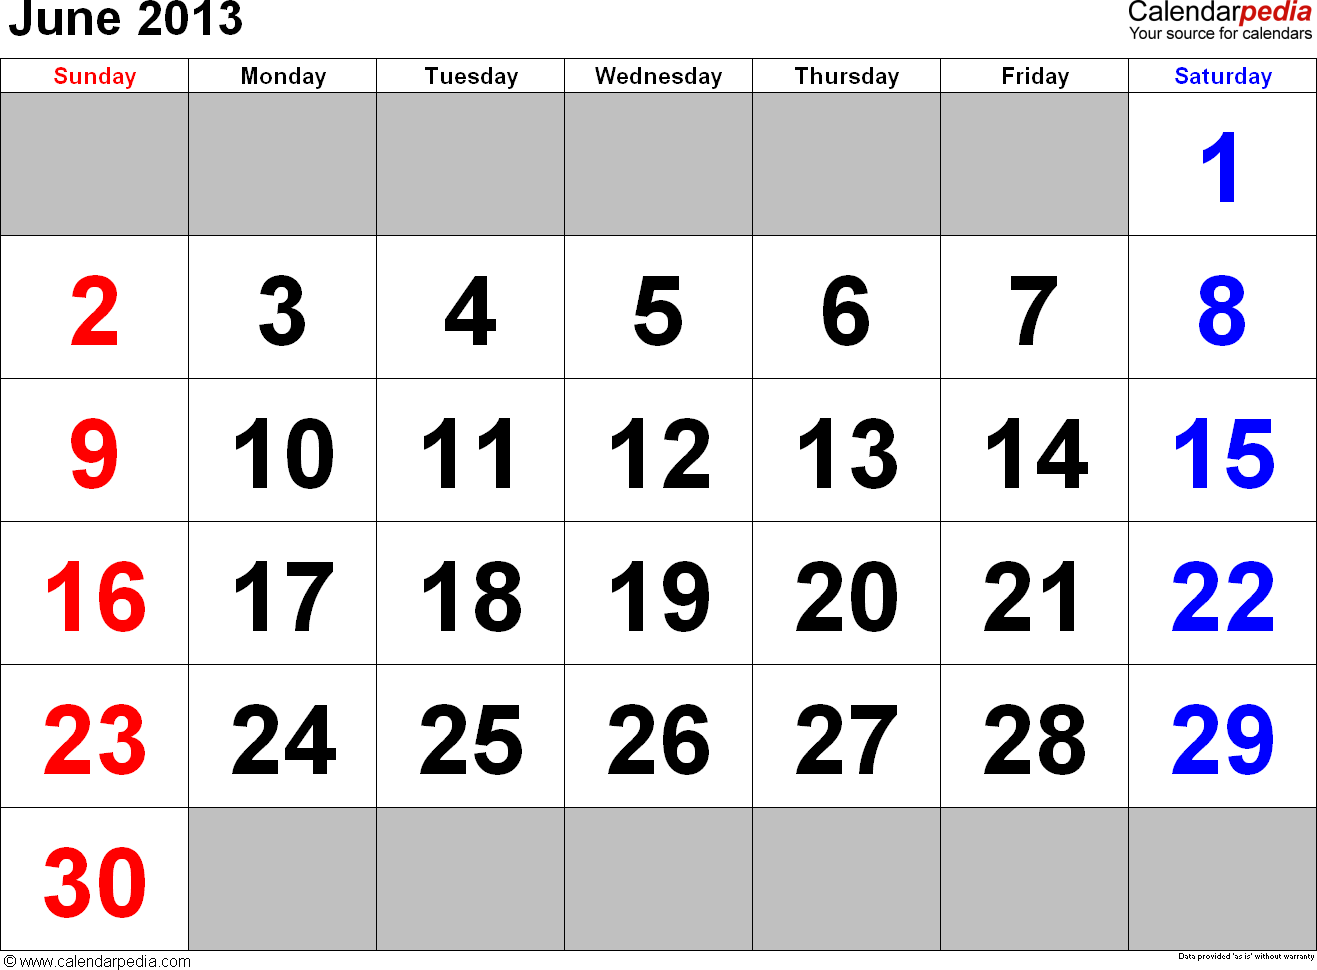 June 2013 calendar, landscape orientation, large numerals, available as printable templates for Word, Excel and PDF